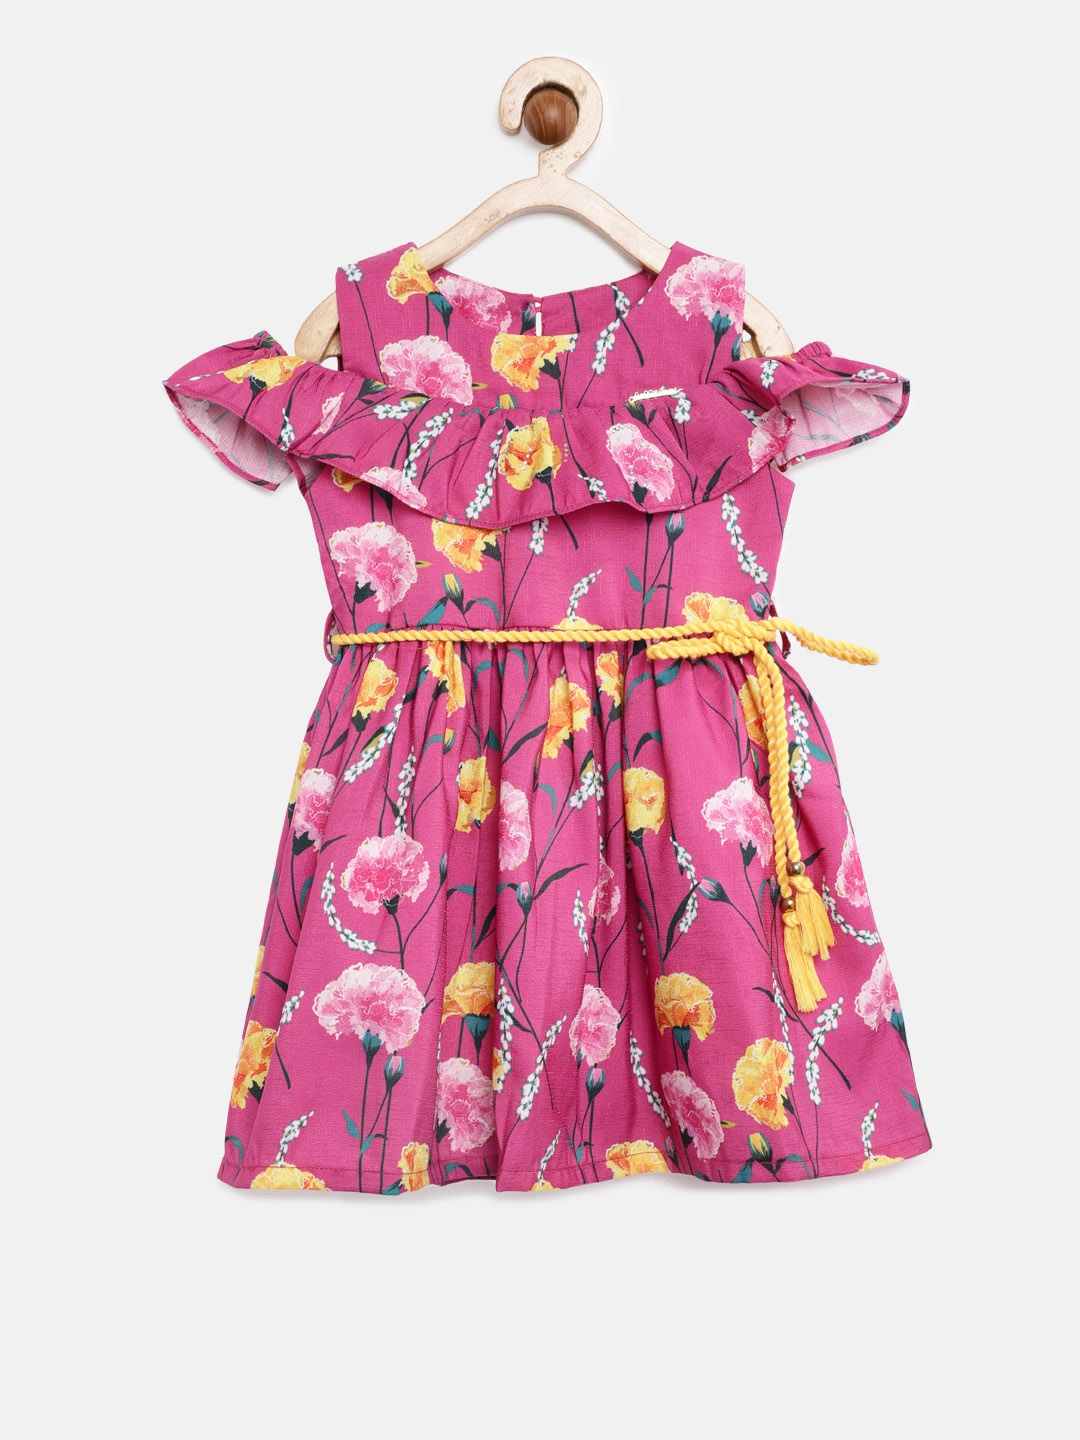 99f9bafe8 Buy Peppermint Girls Pink WINTER RUSH Printed Fit And Flare Dress ...